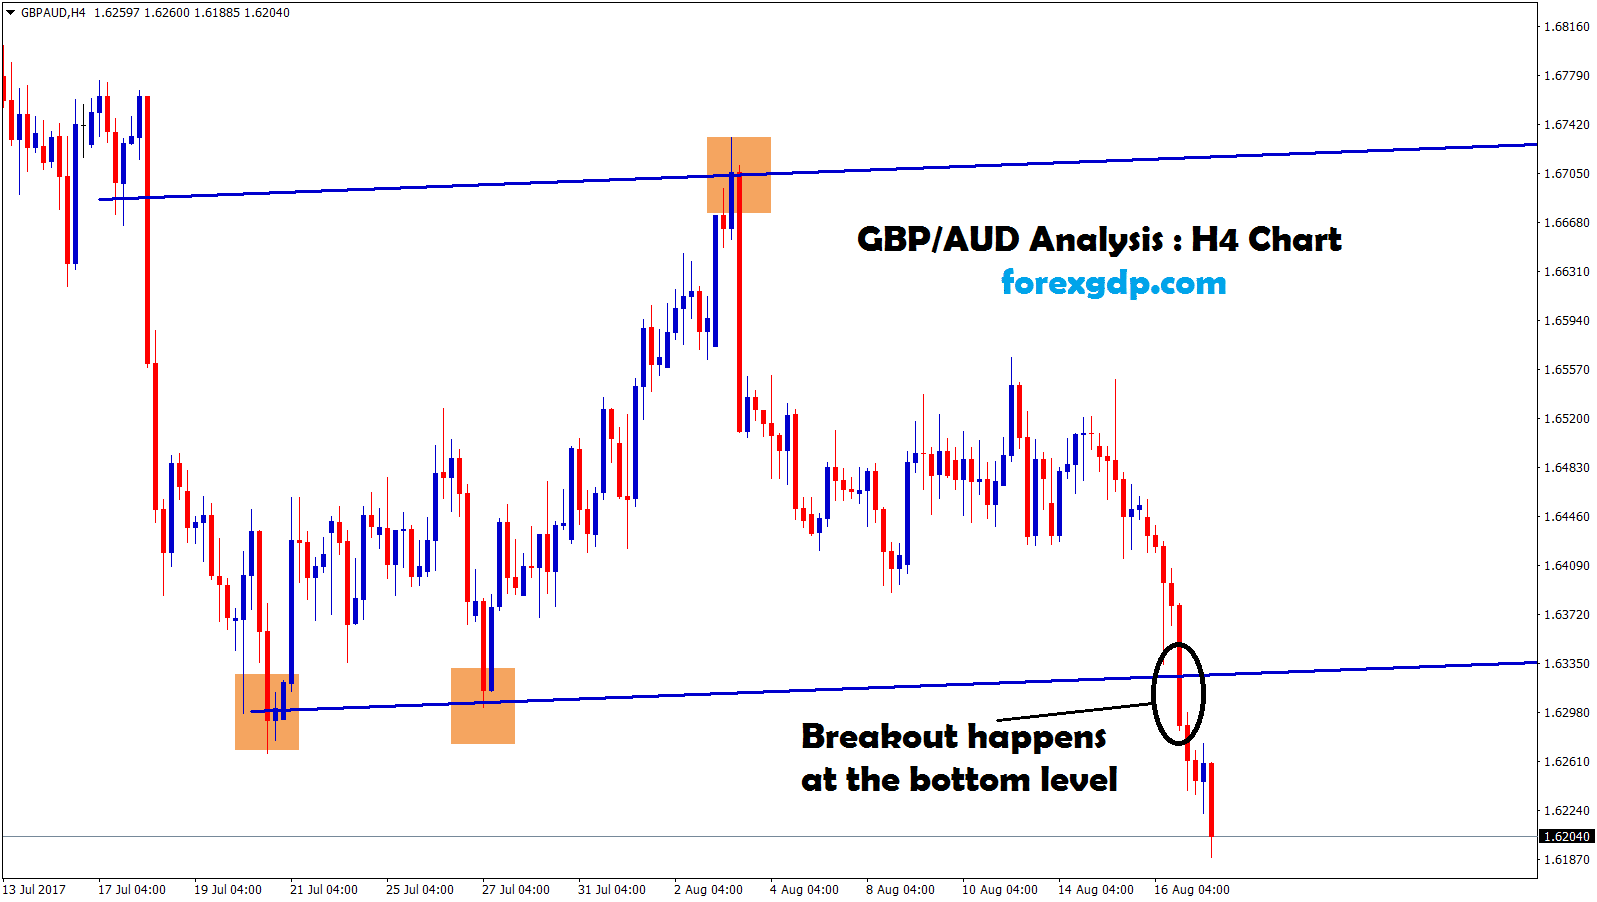 Breakout at the bottom lower support confirm sell trade signal in GBPAUD